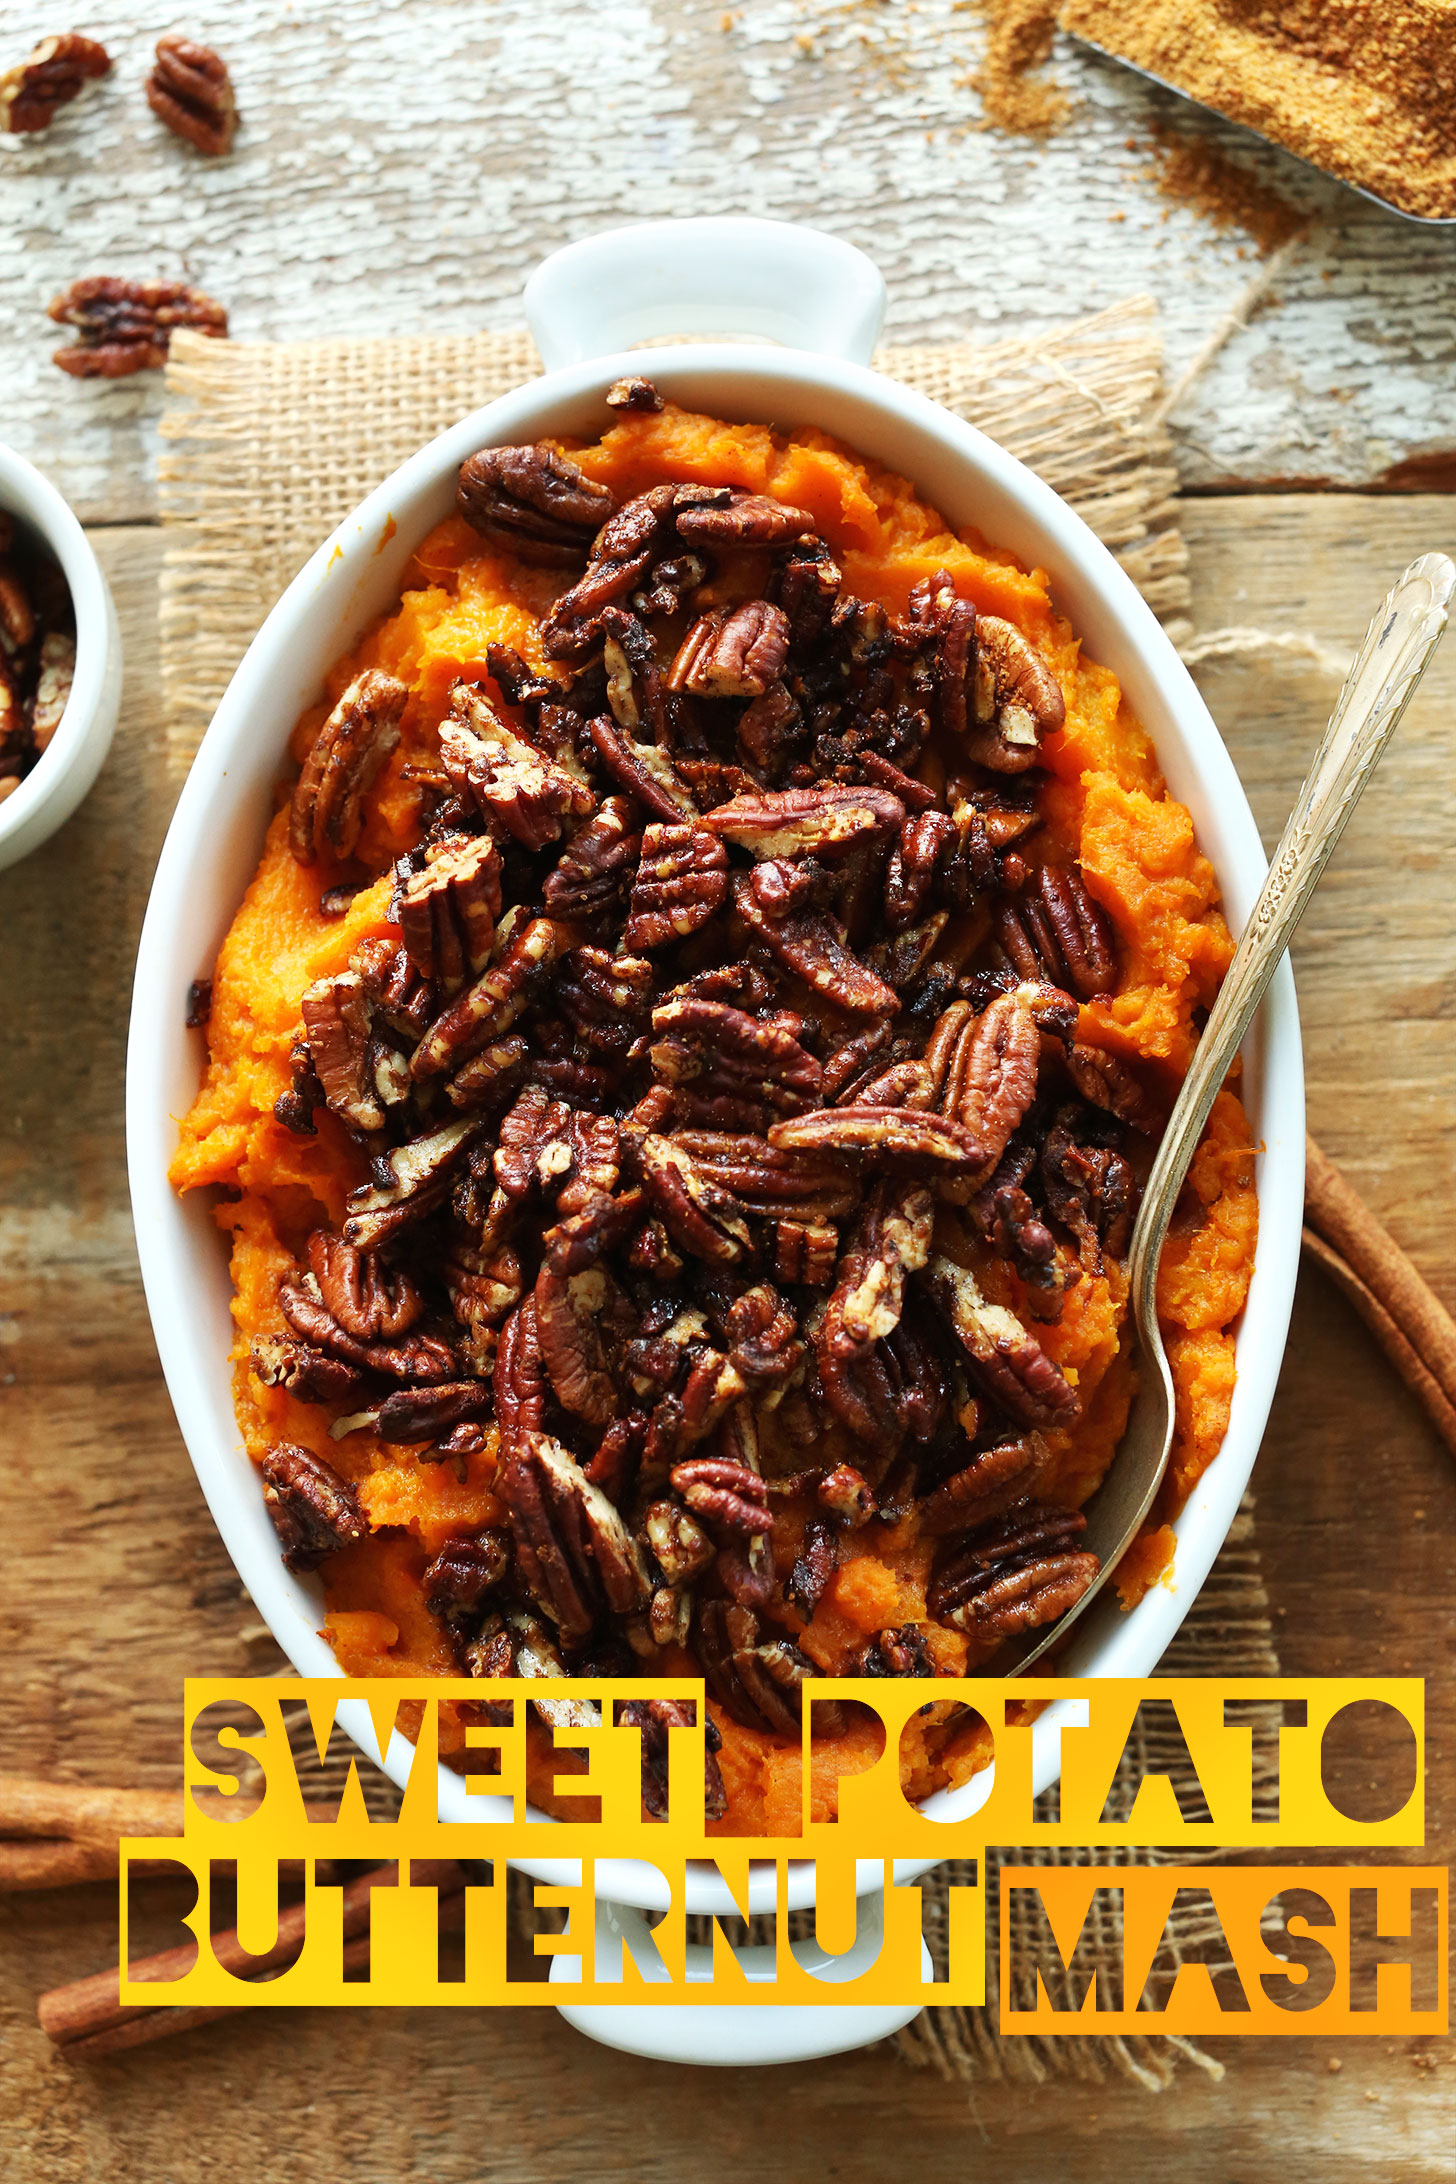 Ceramic baking dish filled with our delicious gluten-free vegan side dish of Butternut Squash Sweet Potato Mash with Maple Cinnamon Pecans